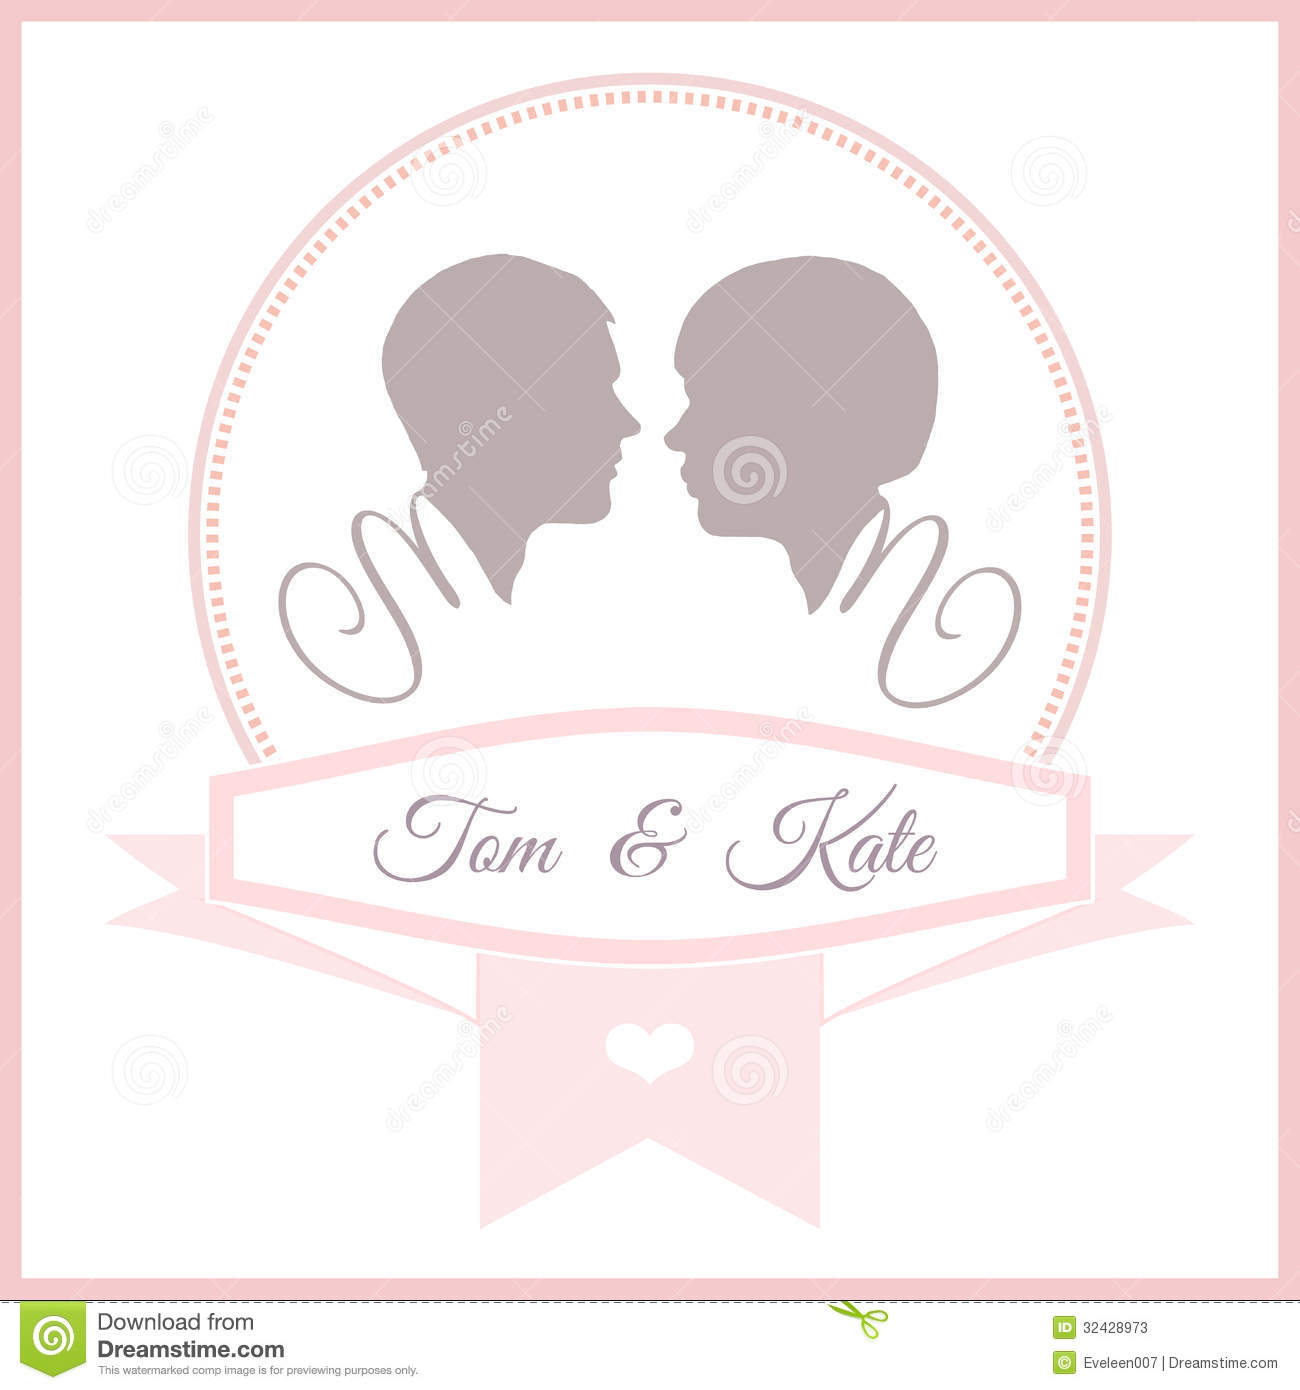 Marriage Invitation Cards Templates – Template Invitation Card